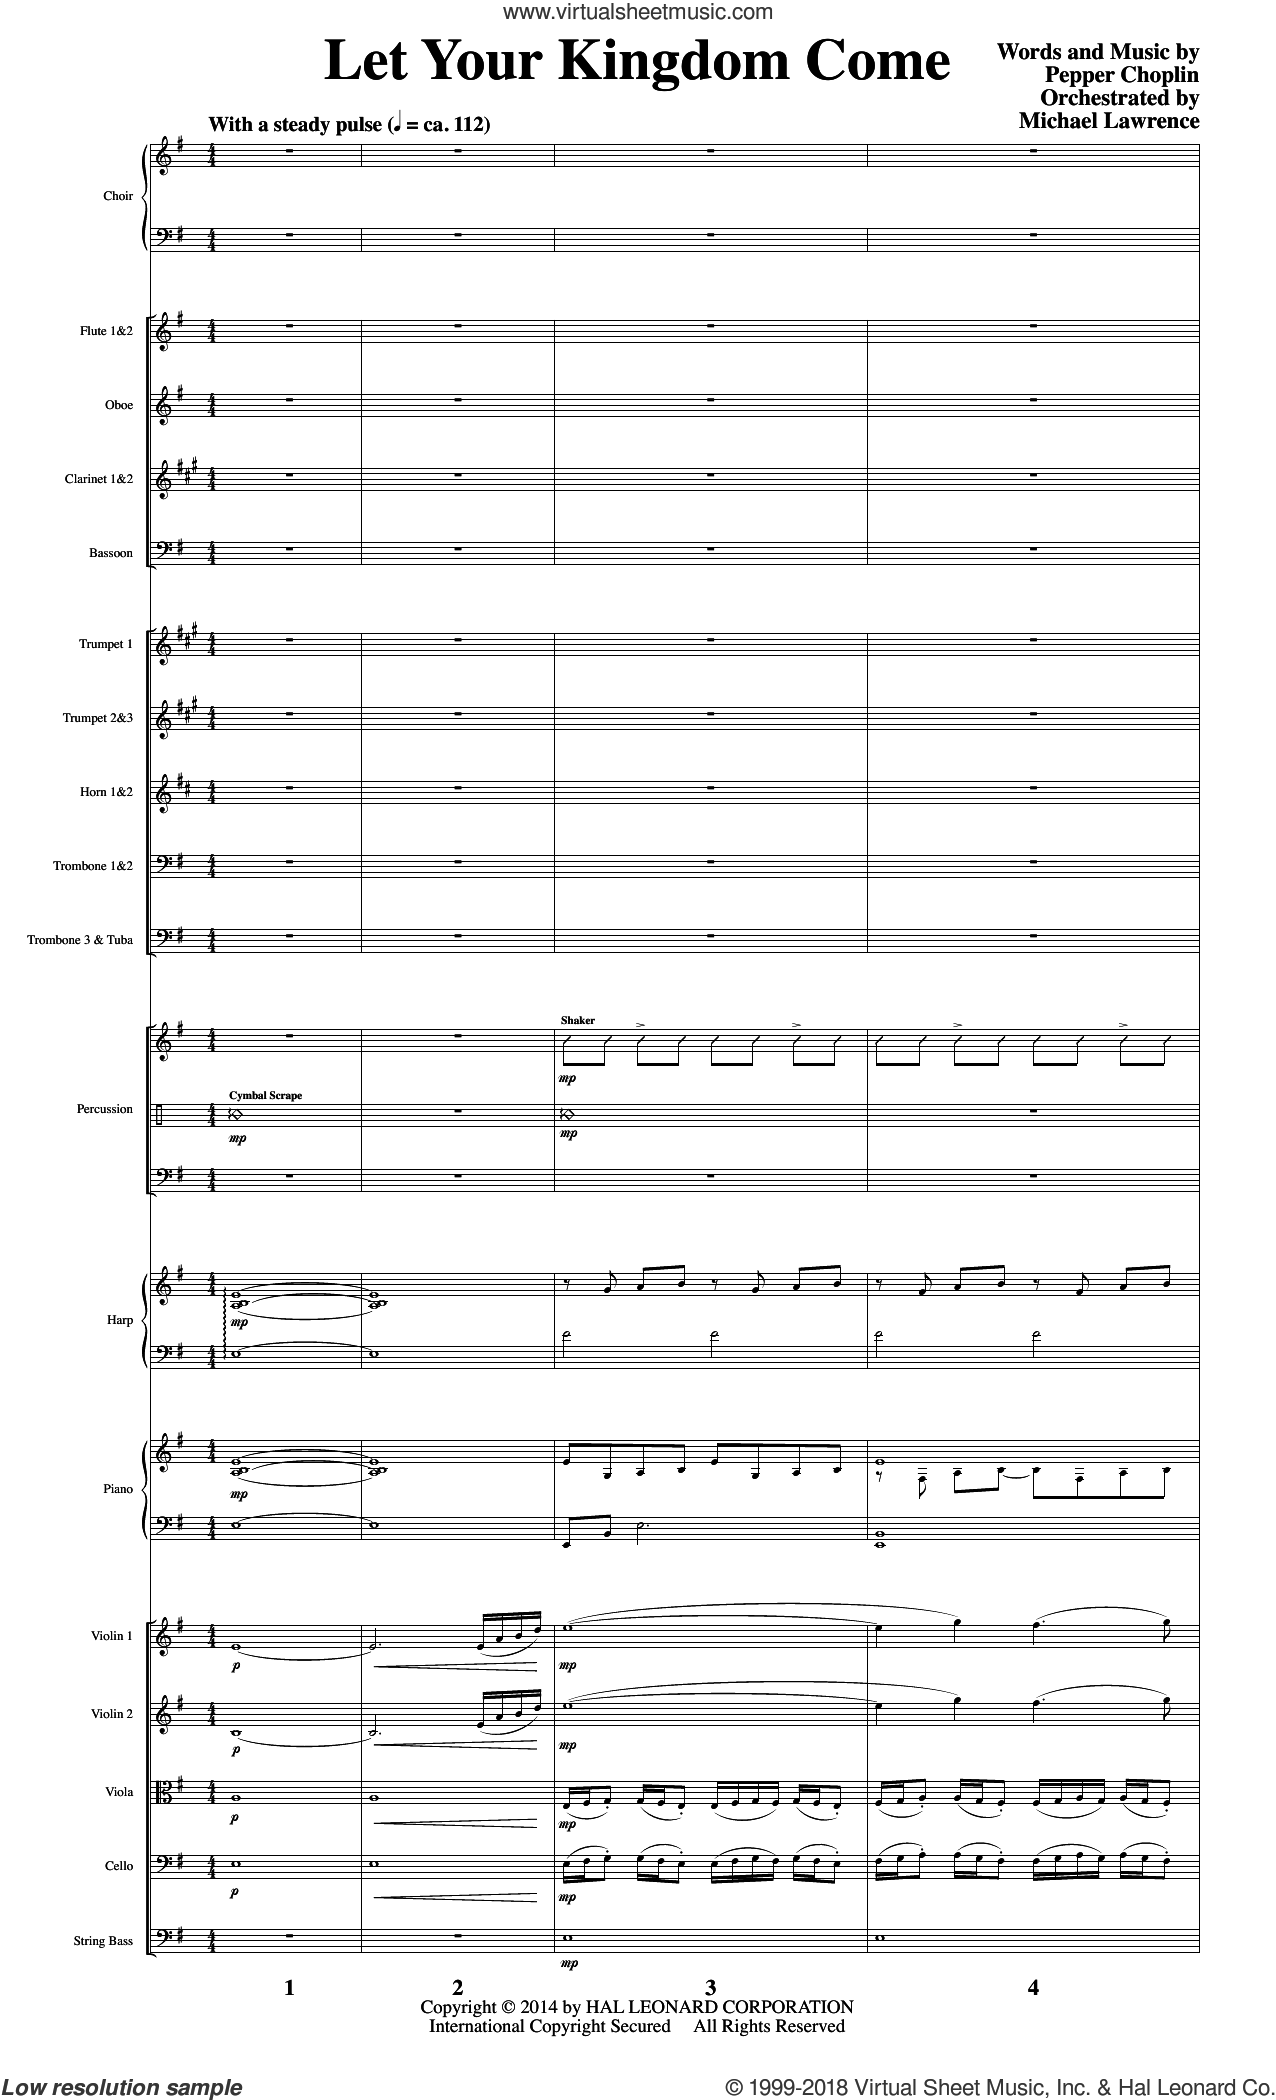 Let Your Kingdom Come (COMPLETE) sheet music for orchestra/band by Pepper Choplin, intermediate skill level